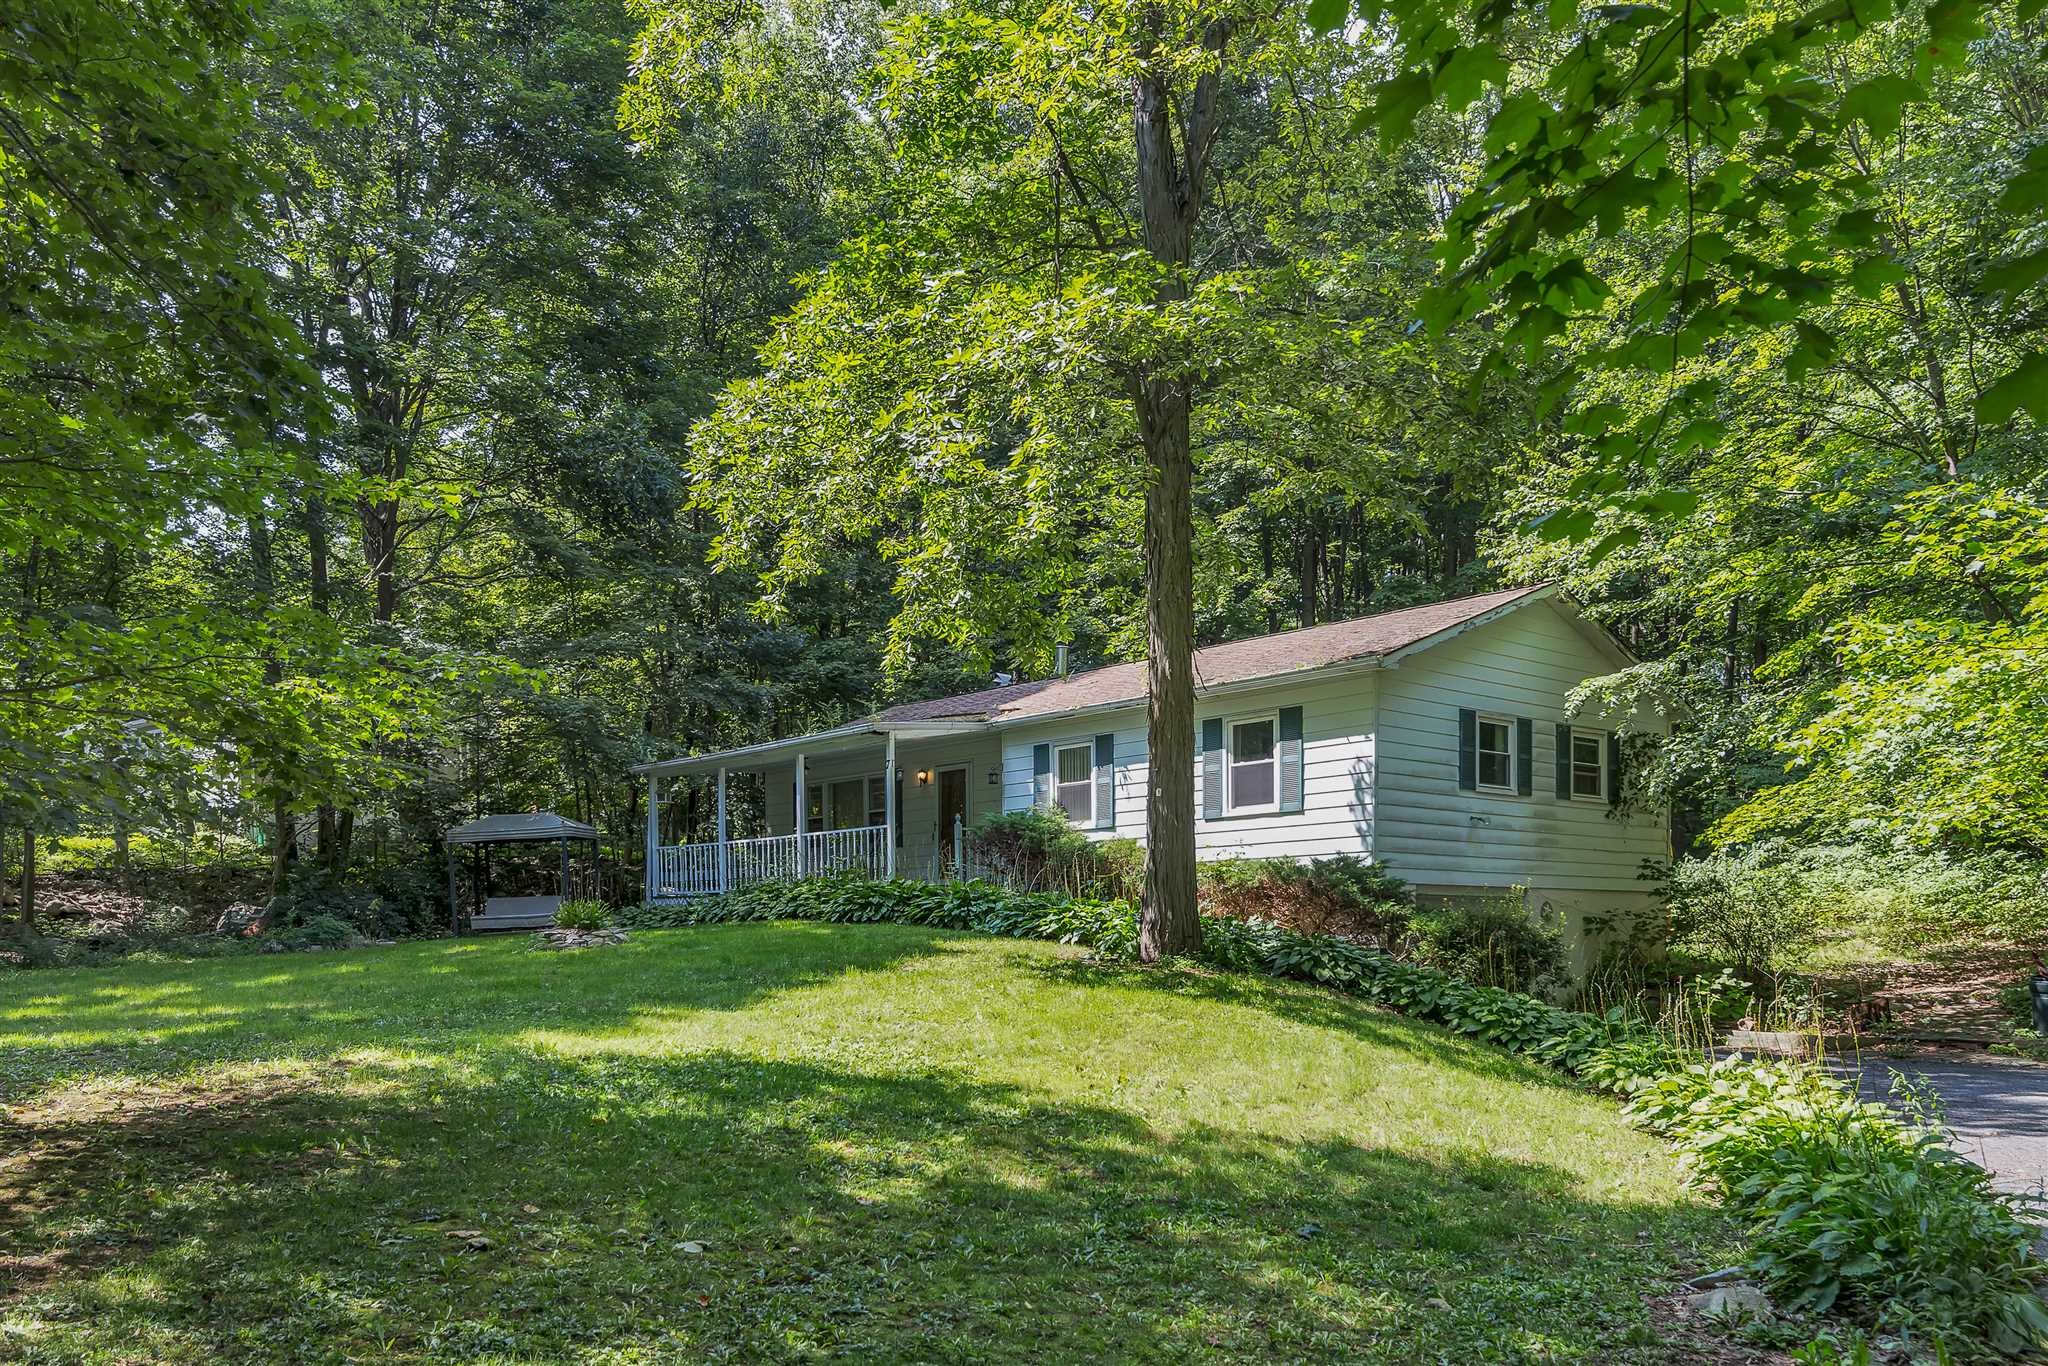 7 KELLY COURT East Fishkill, NY 12582 - MLS #: 365177